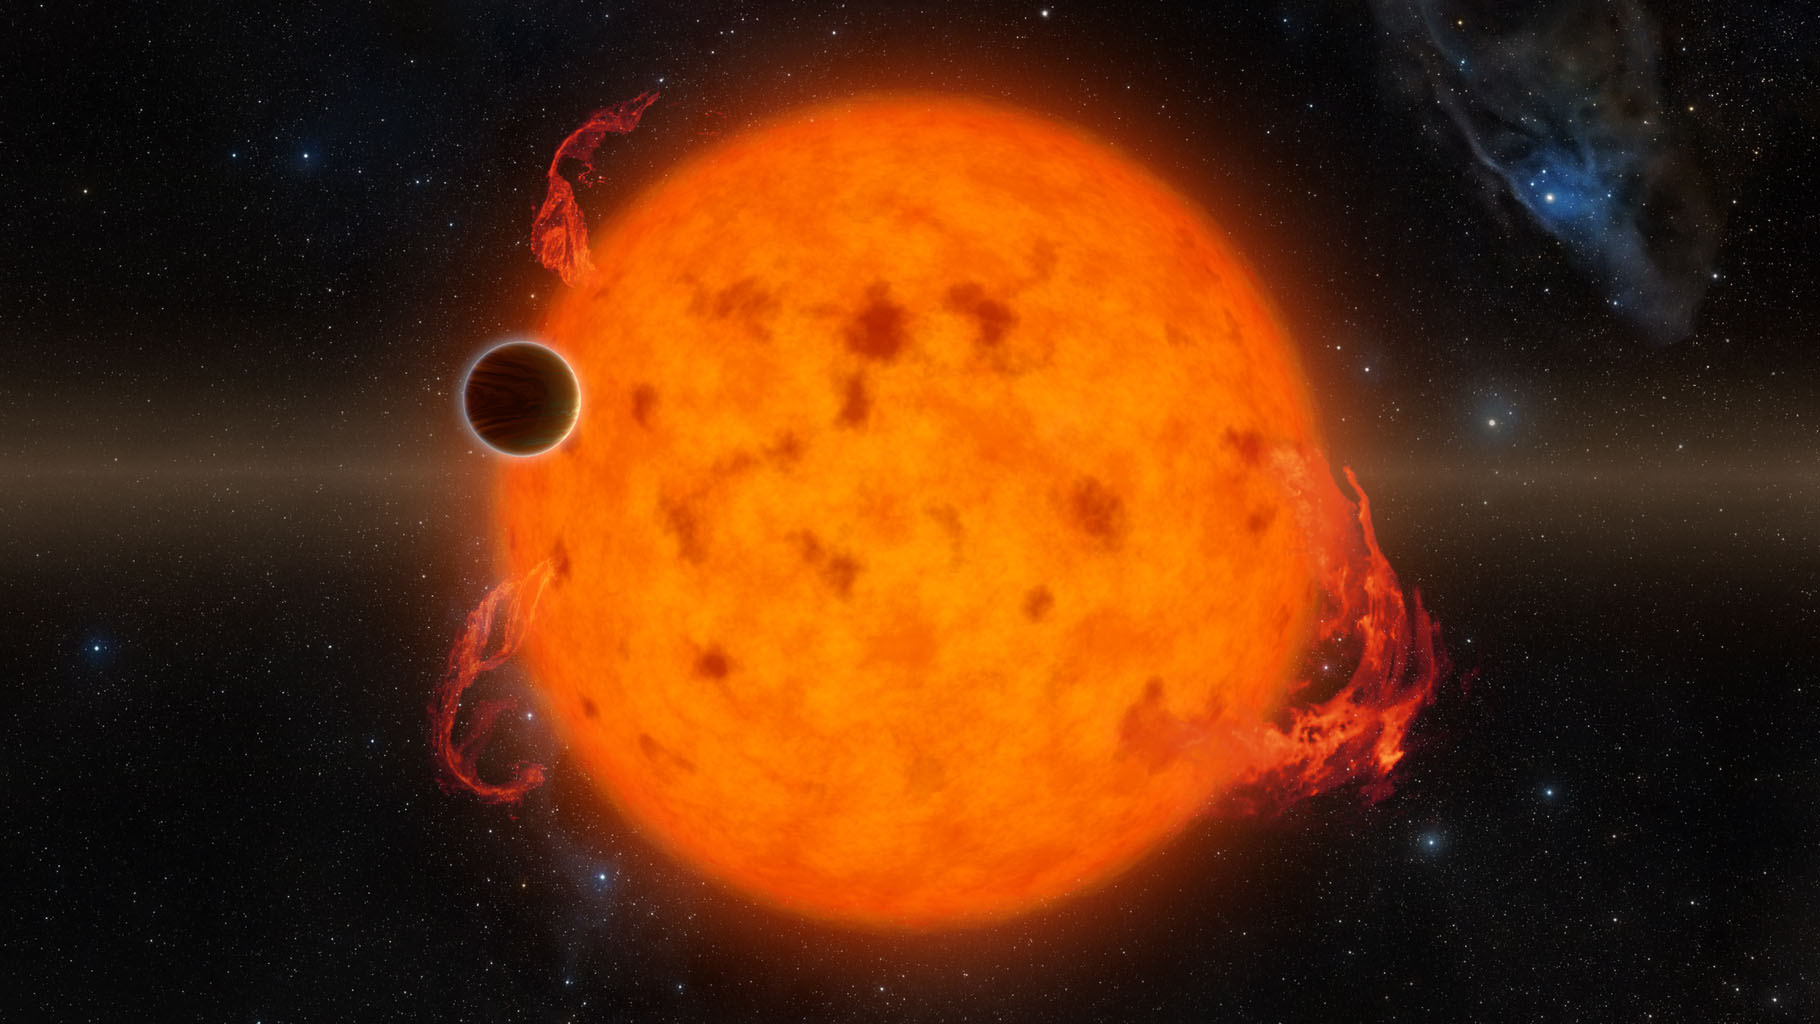 K2-33b, shown in this illustration, is one of the youngest exoplanets detected to date using NASA's Kepler Space Telescope.